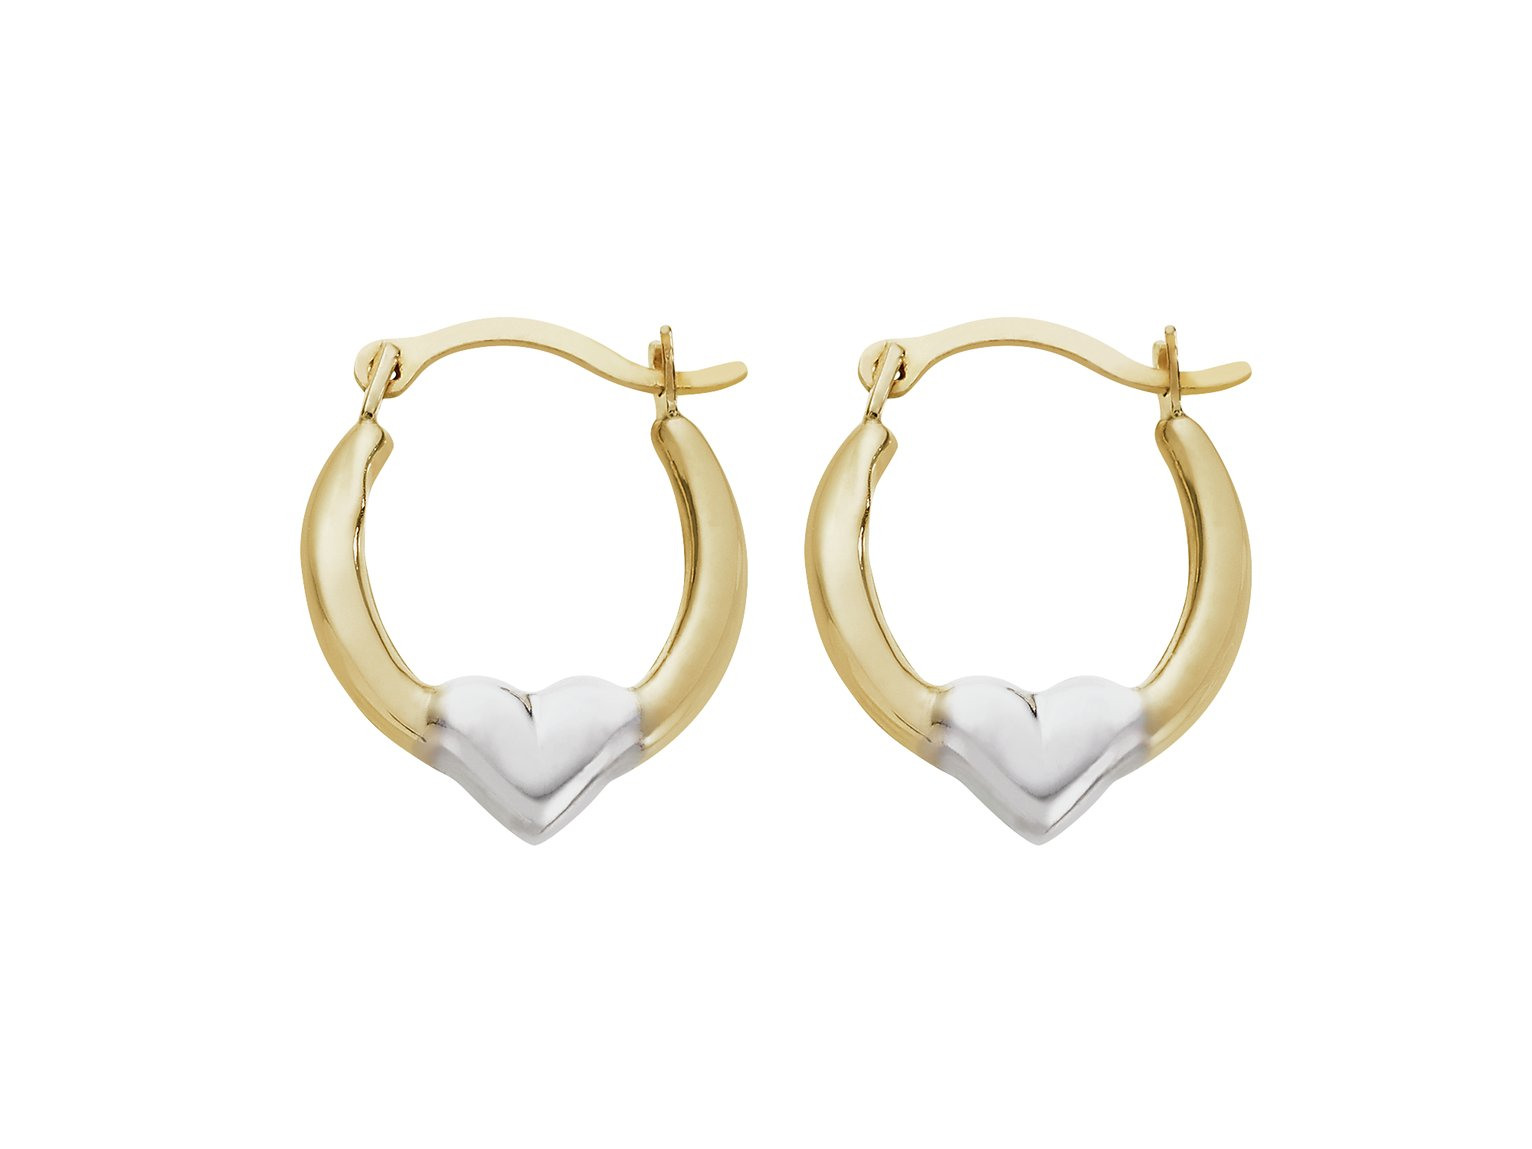 Revere 9ct Gold Rhodium Plated Heart Creole Hoop Earrings review